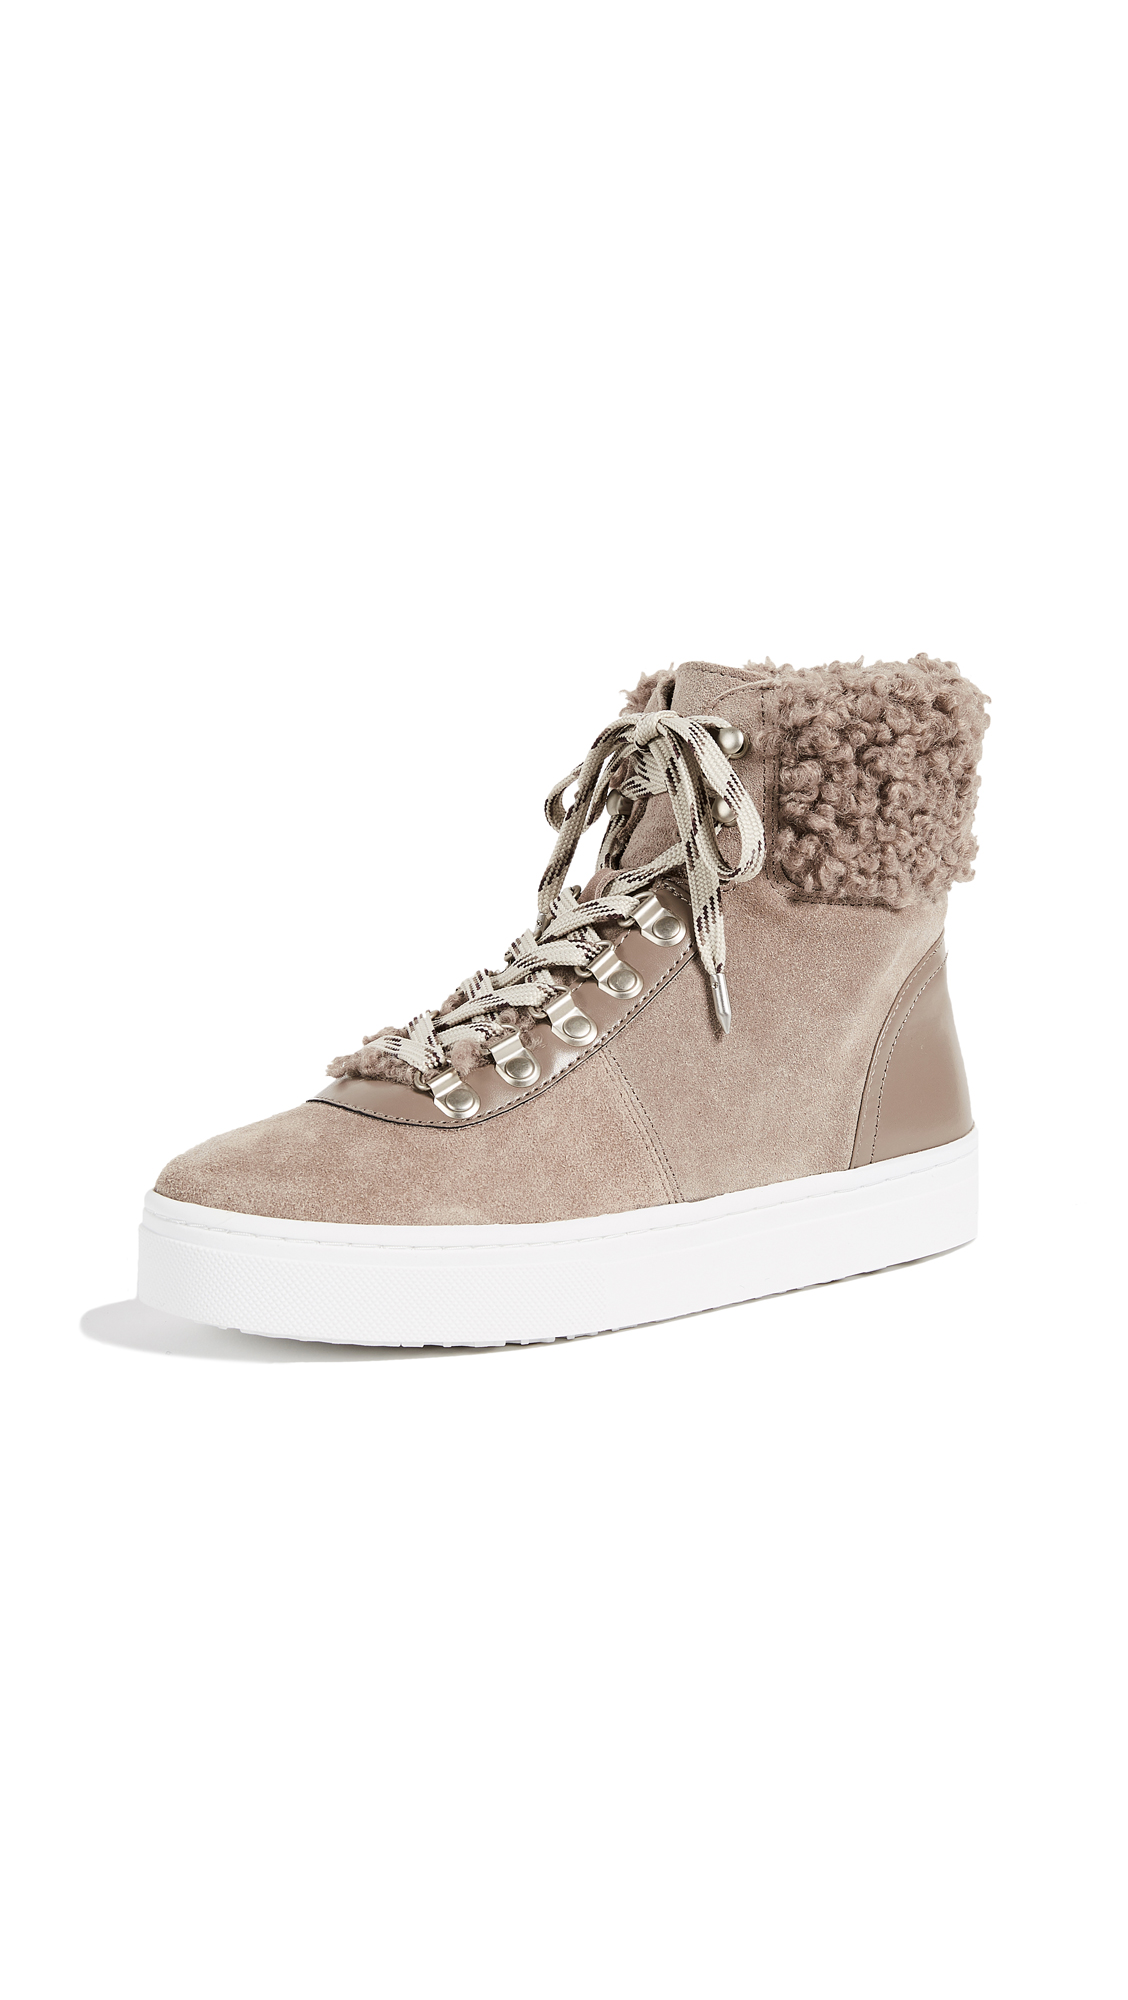 Sam Edelman Luther High Top Sneakers - New Putty